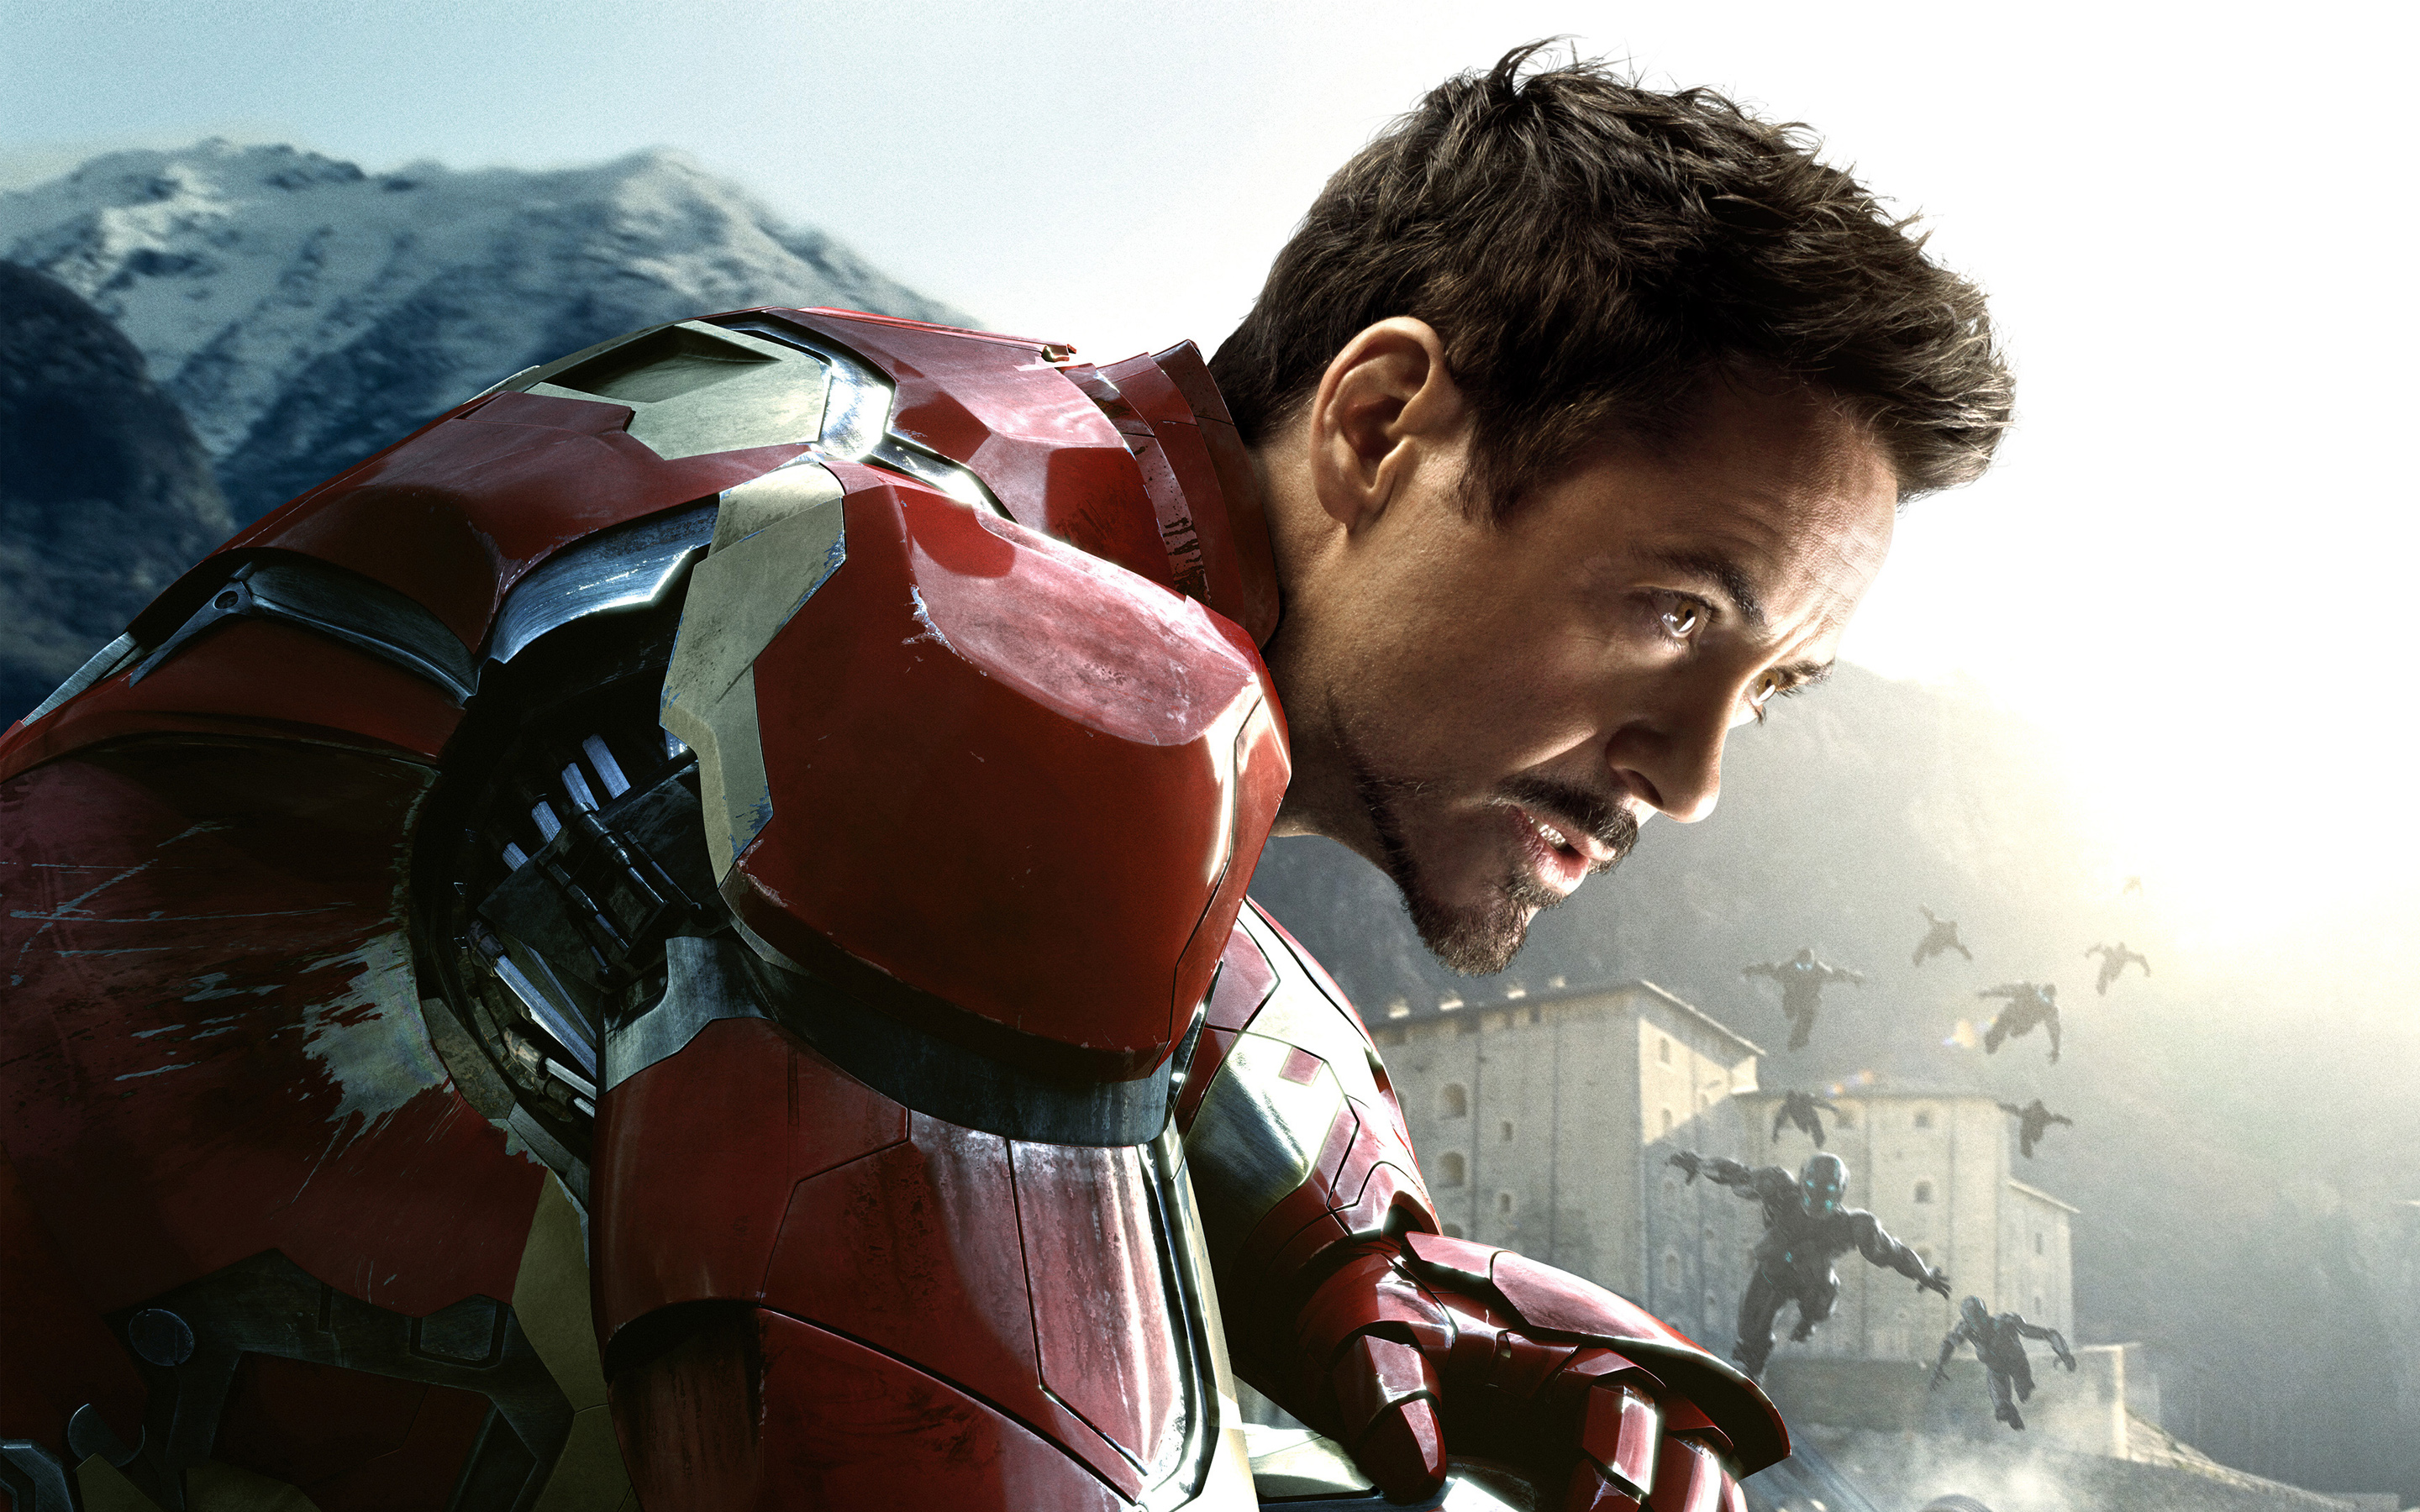 Iron Man Avengers Age of Ultron Wallpapers HD Wallpapers 2880x1800